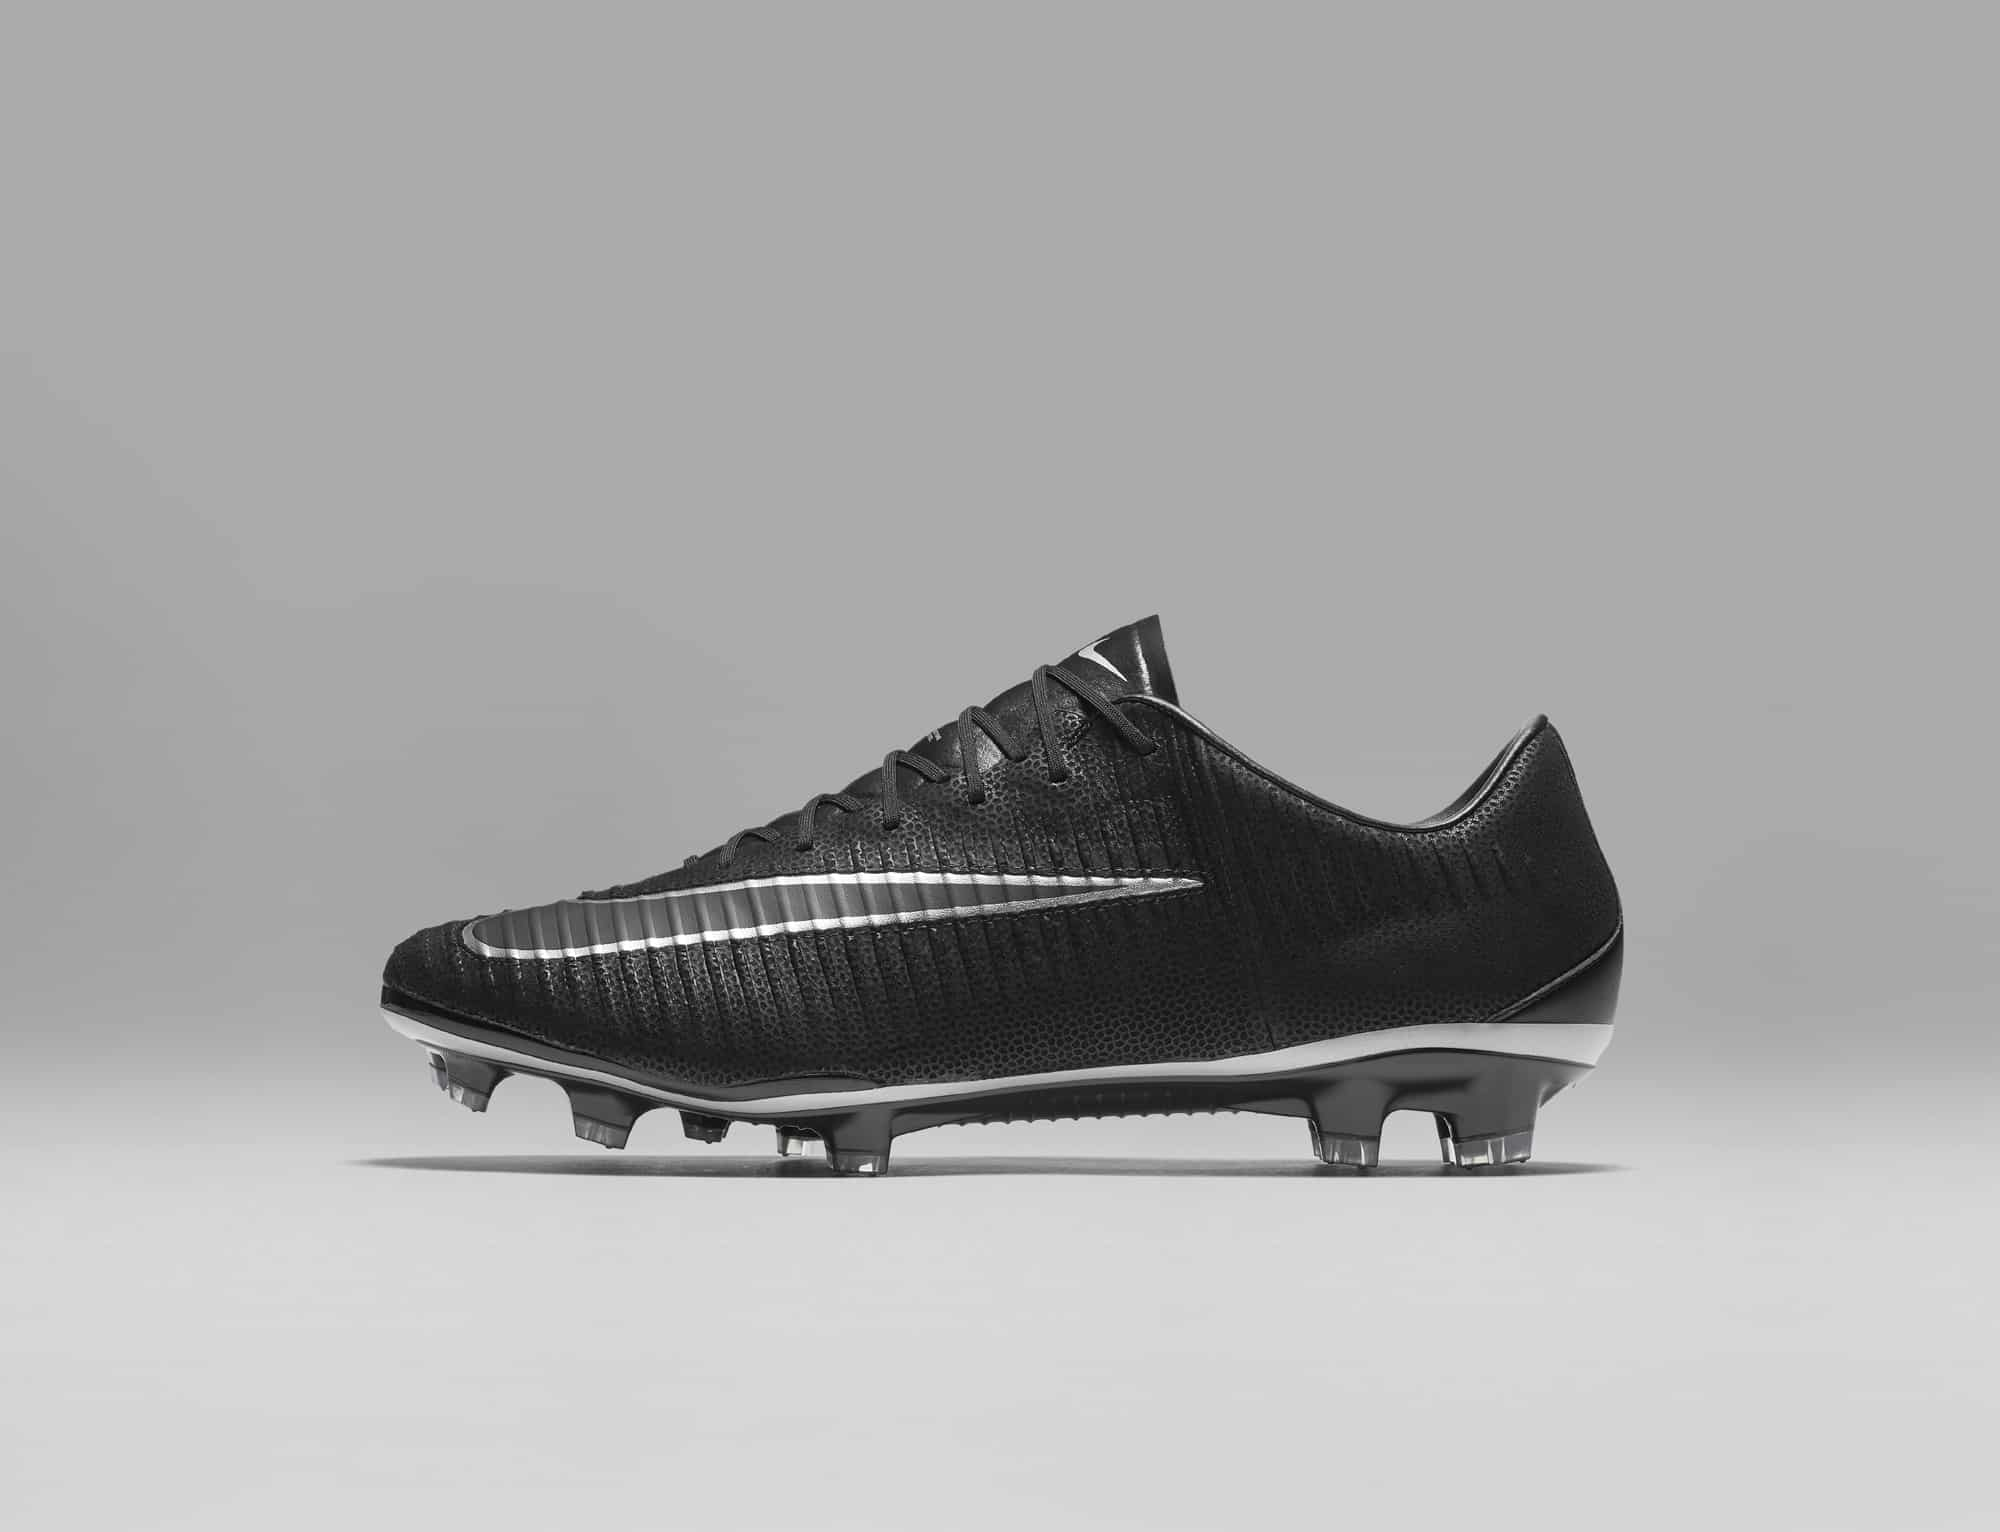 chaussures-football-nike-mercurial-vapor-xi-tech-craft-img3